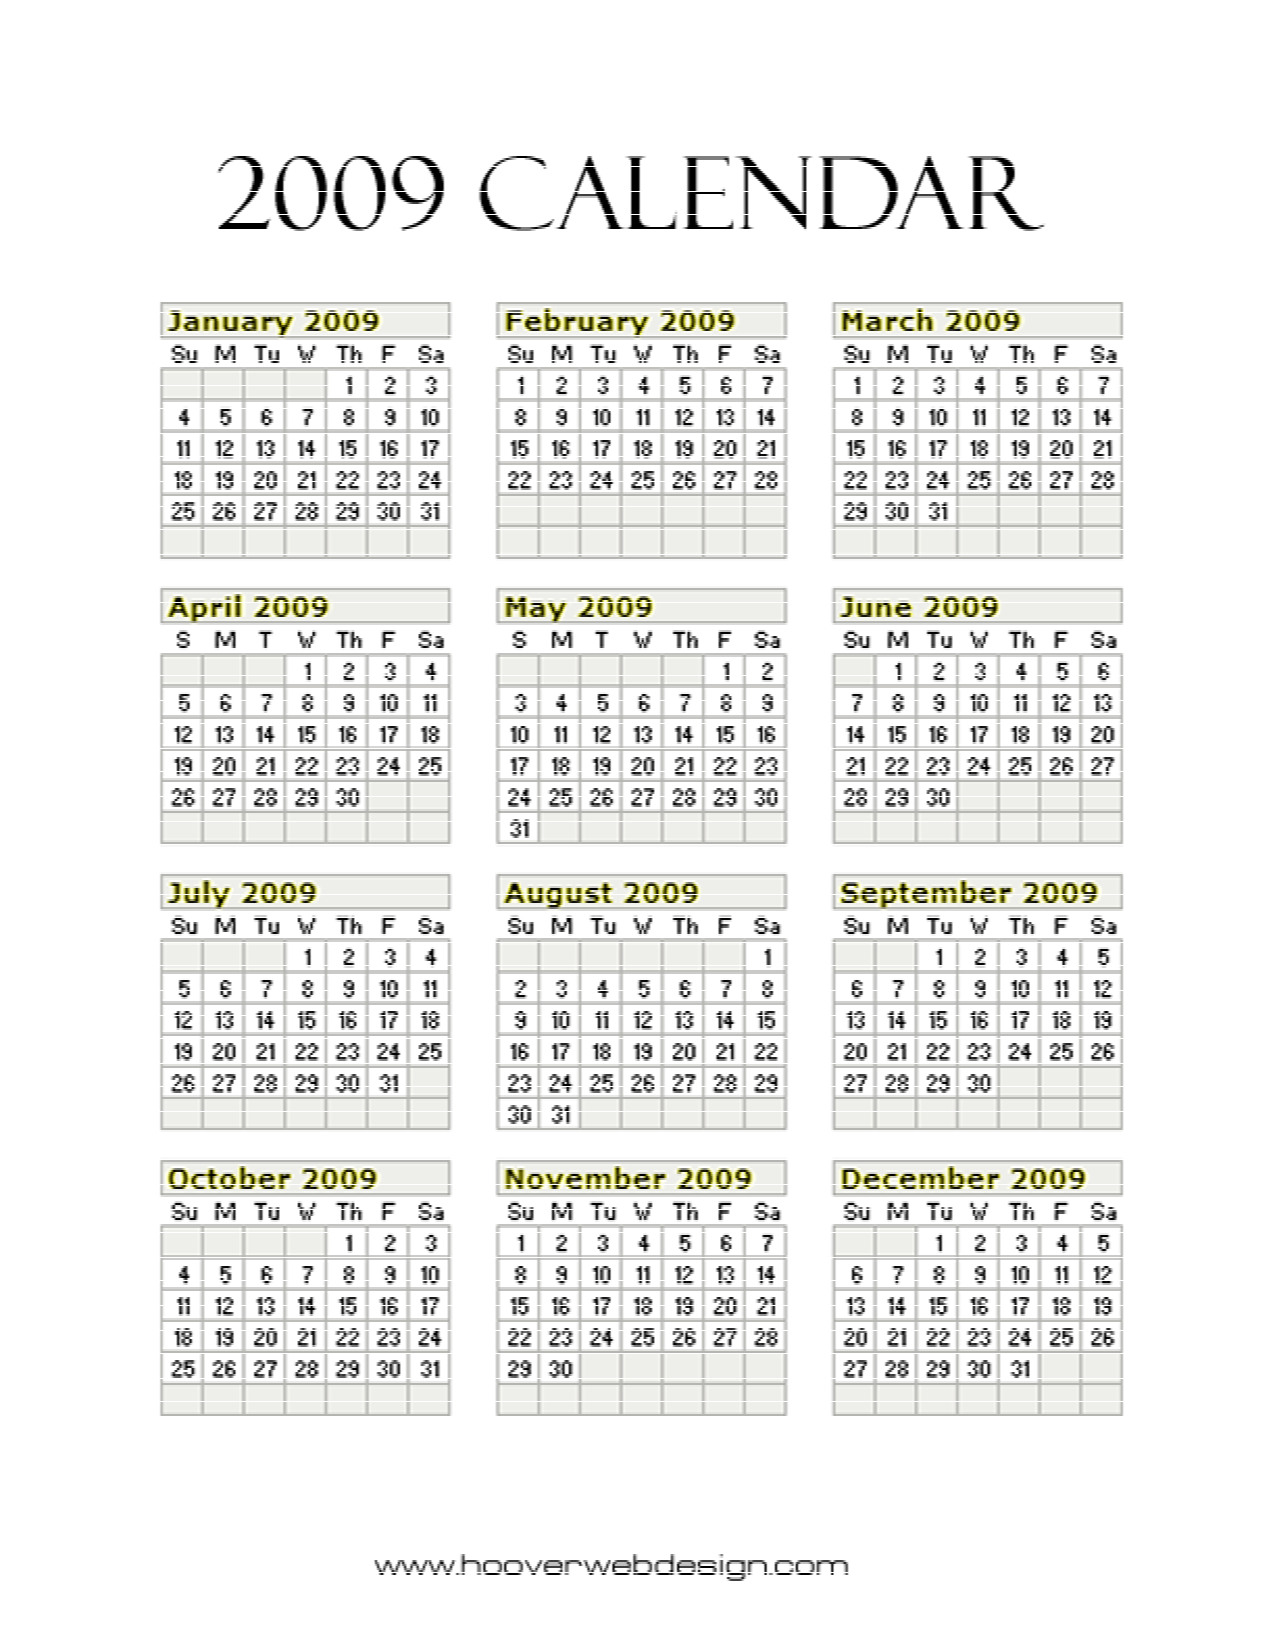 5 Images of 2009 Calendar Printable Template